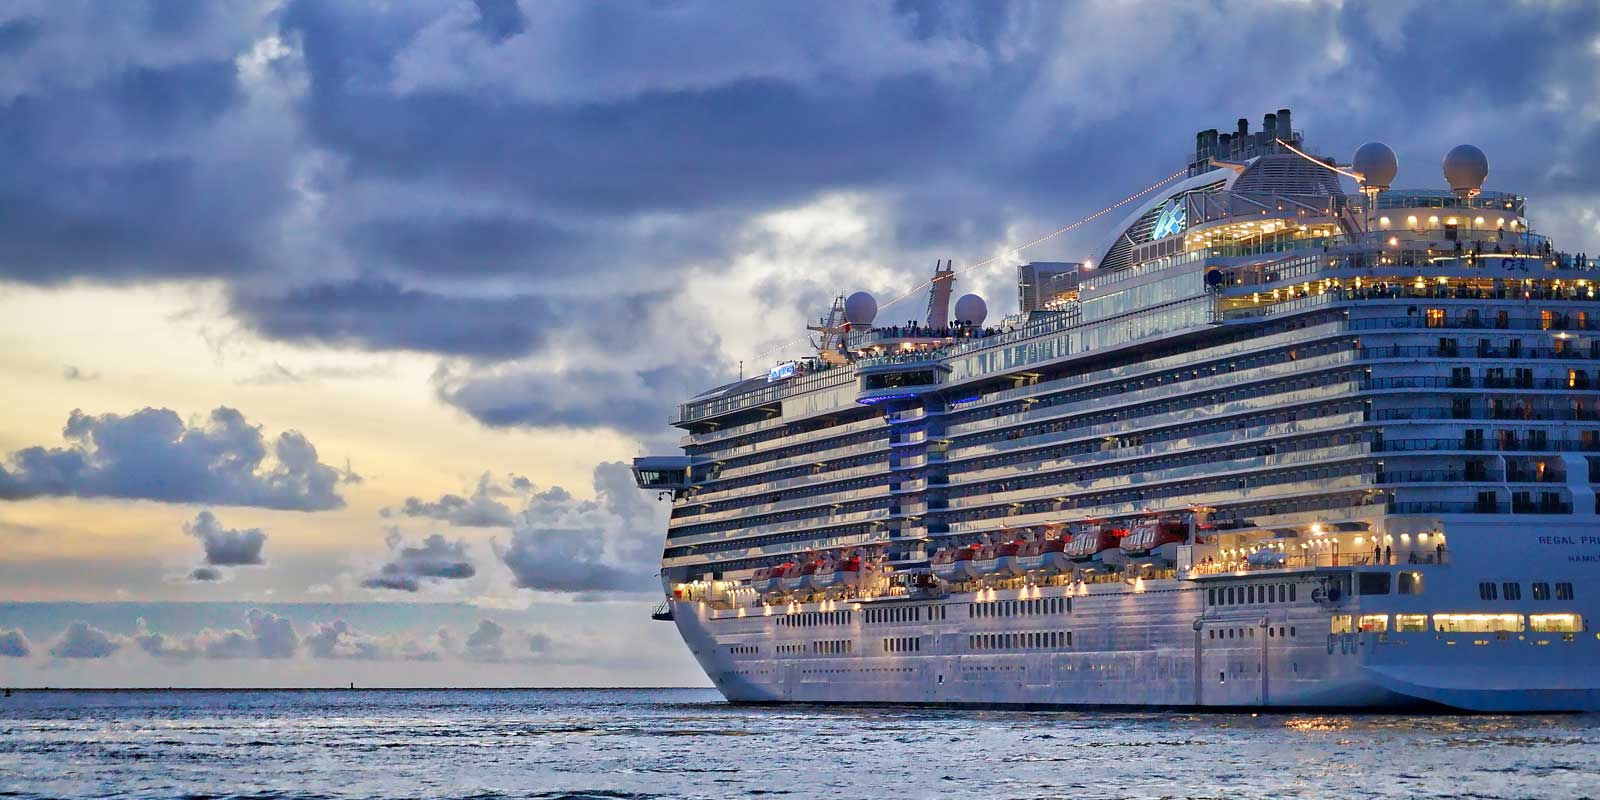 Landscape view of a gigantic vacation cruise ship at sunset.